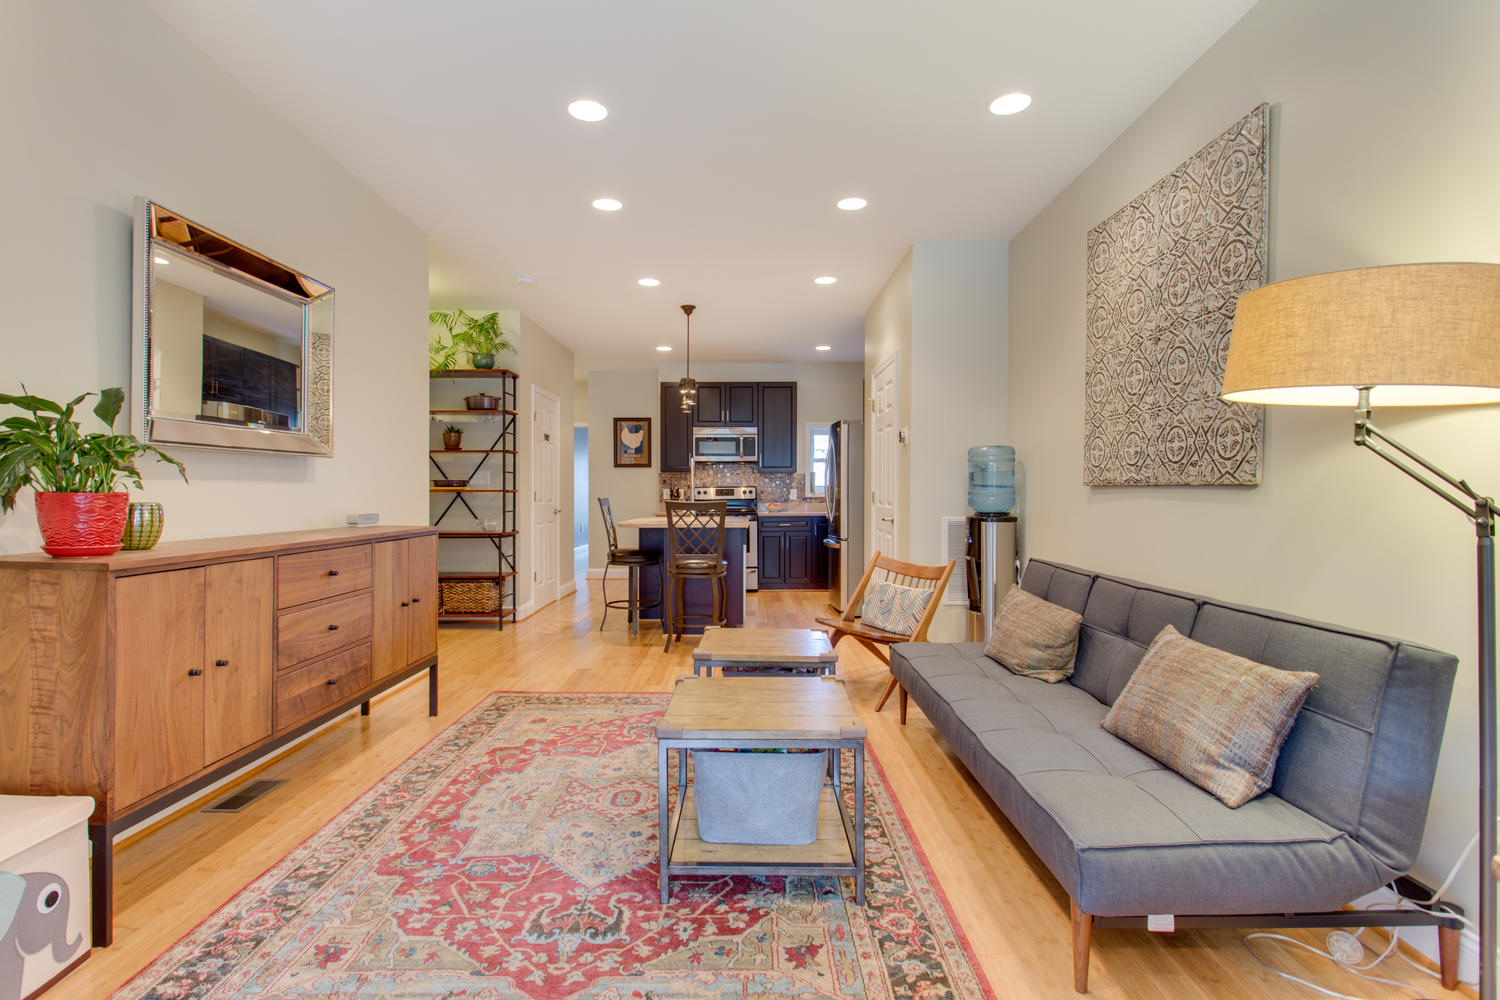 3532 13th St NW Washington DC-large-040-41-Living Room-1500x1000-72dpi.jpg